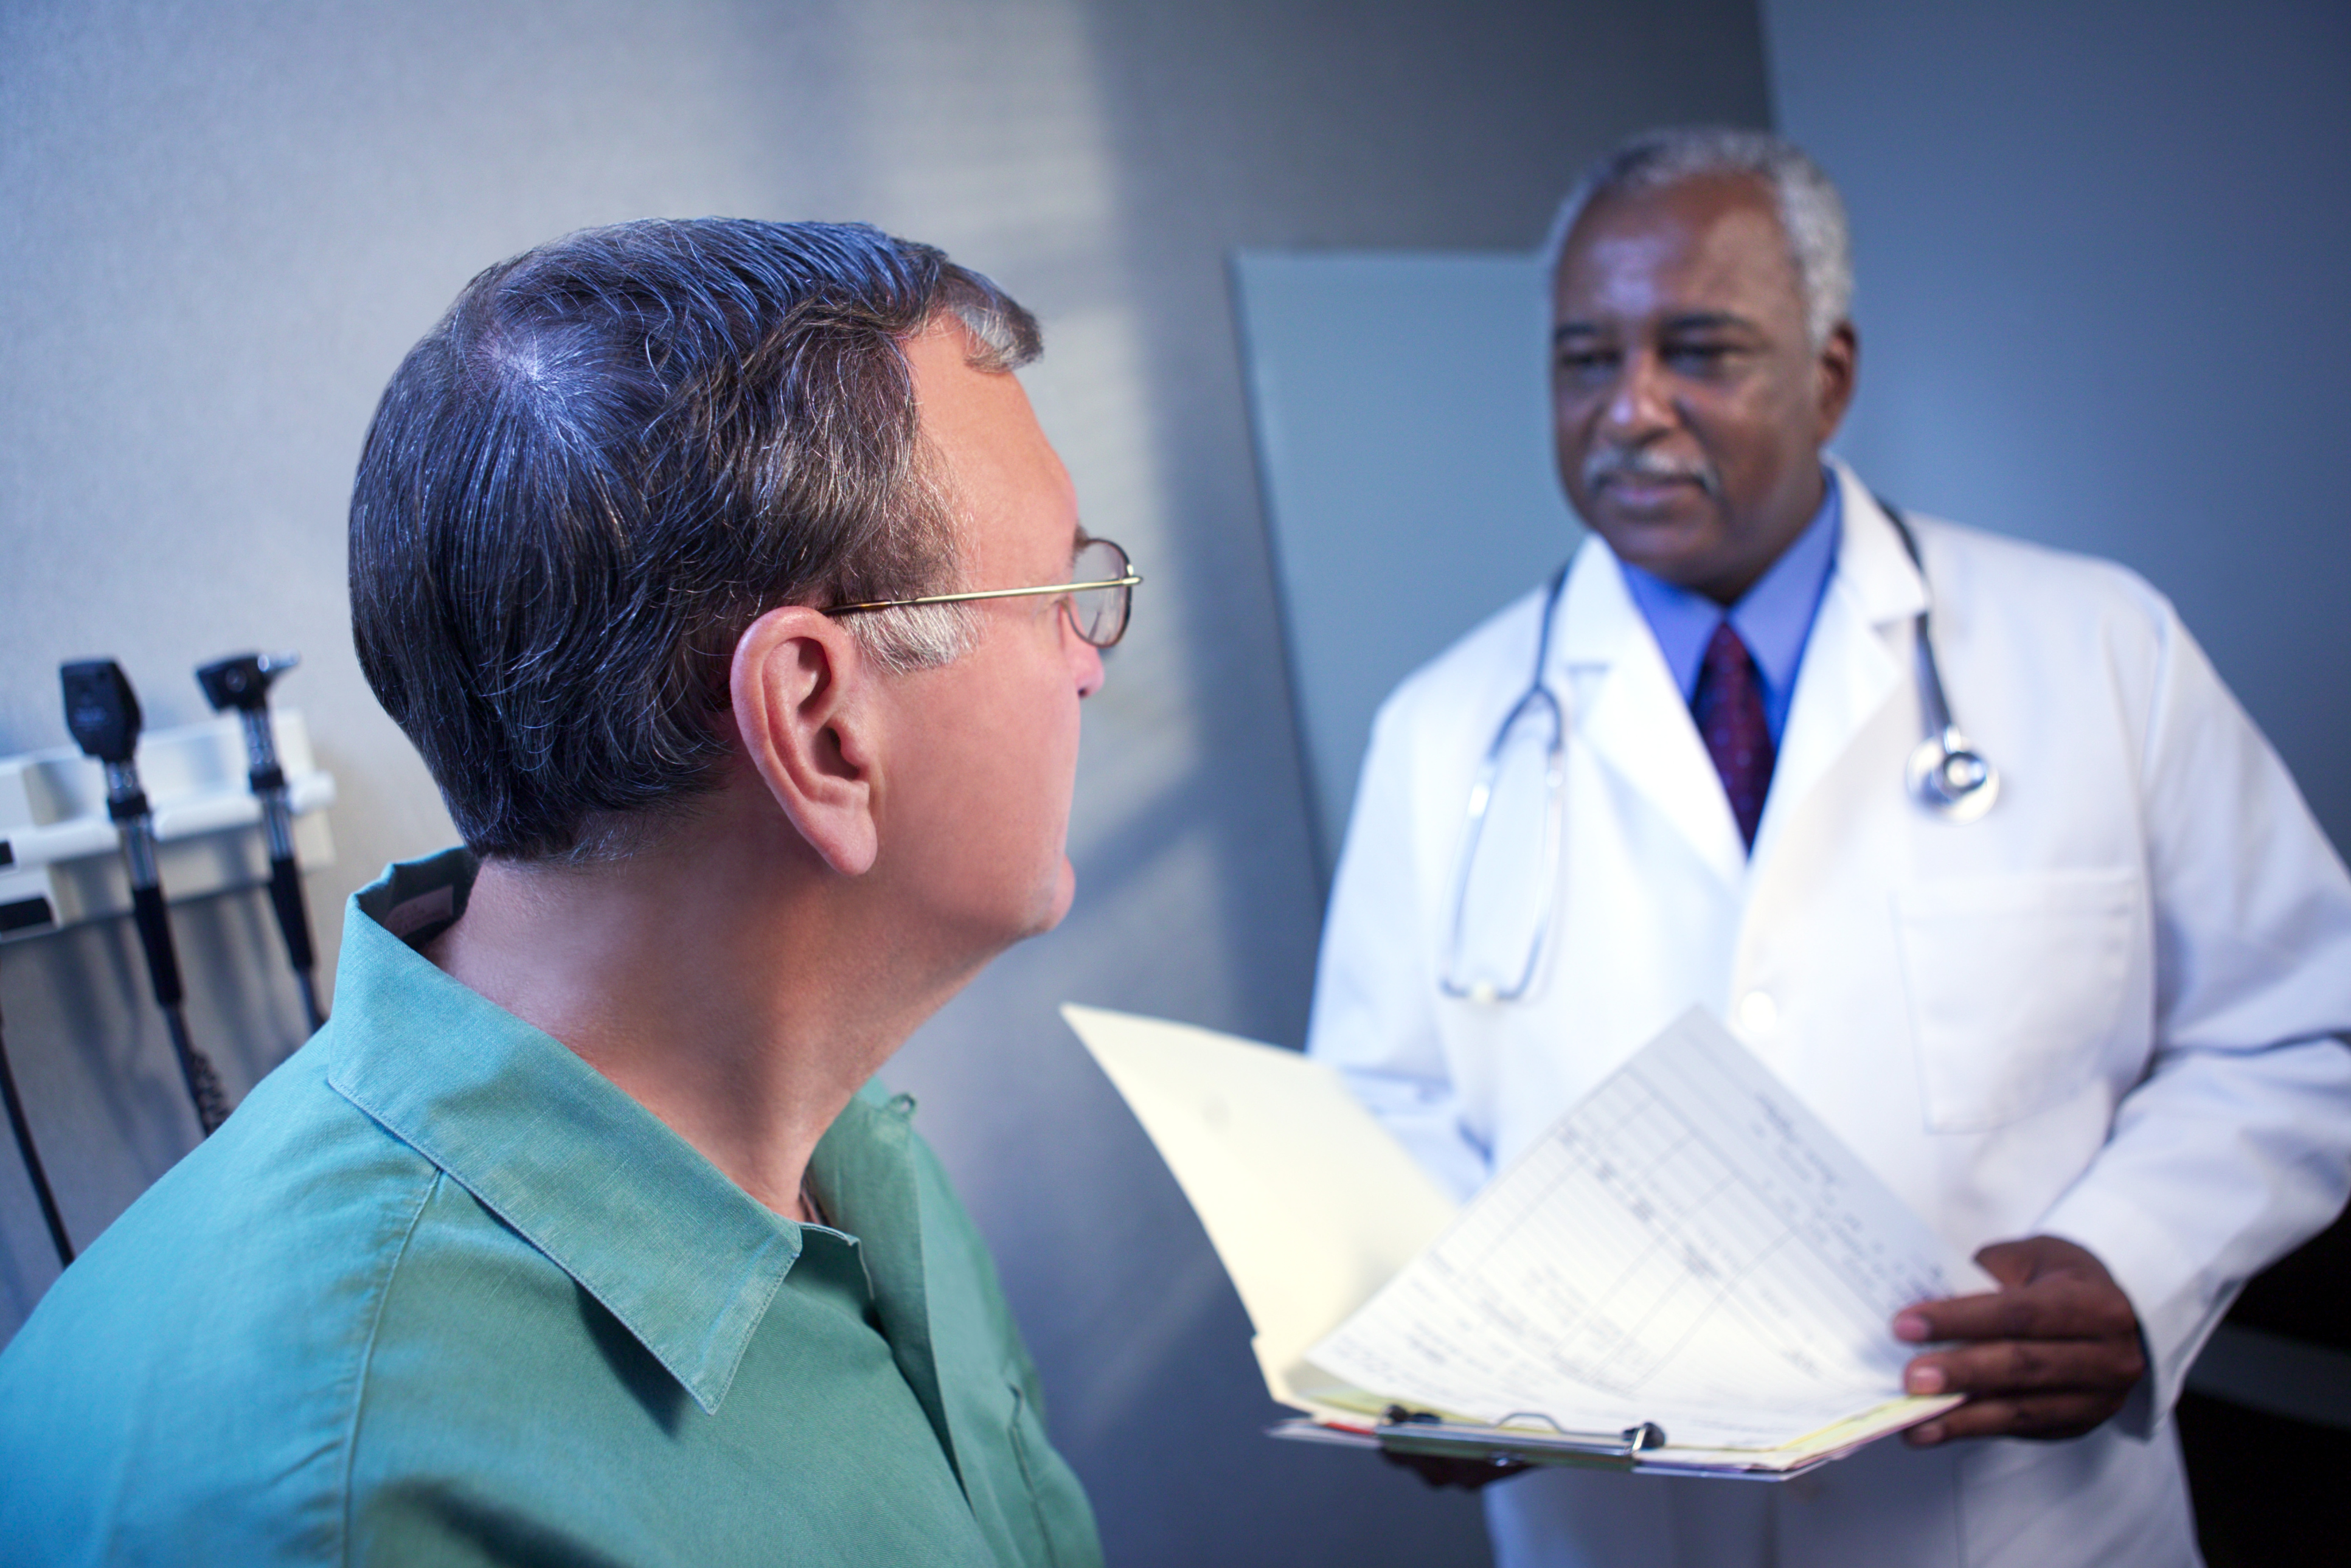 Why is getting a colonoscopy important?